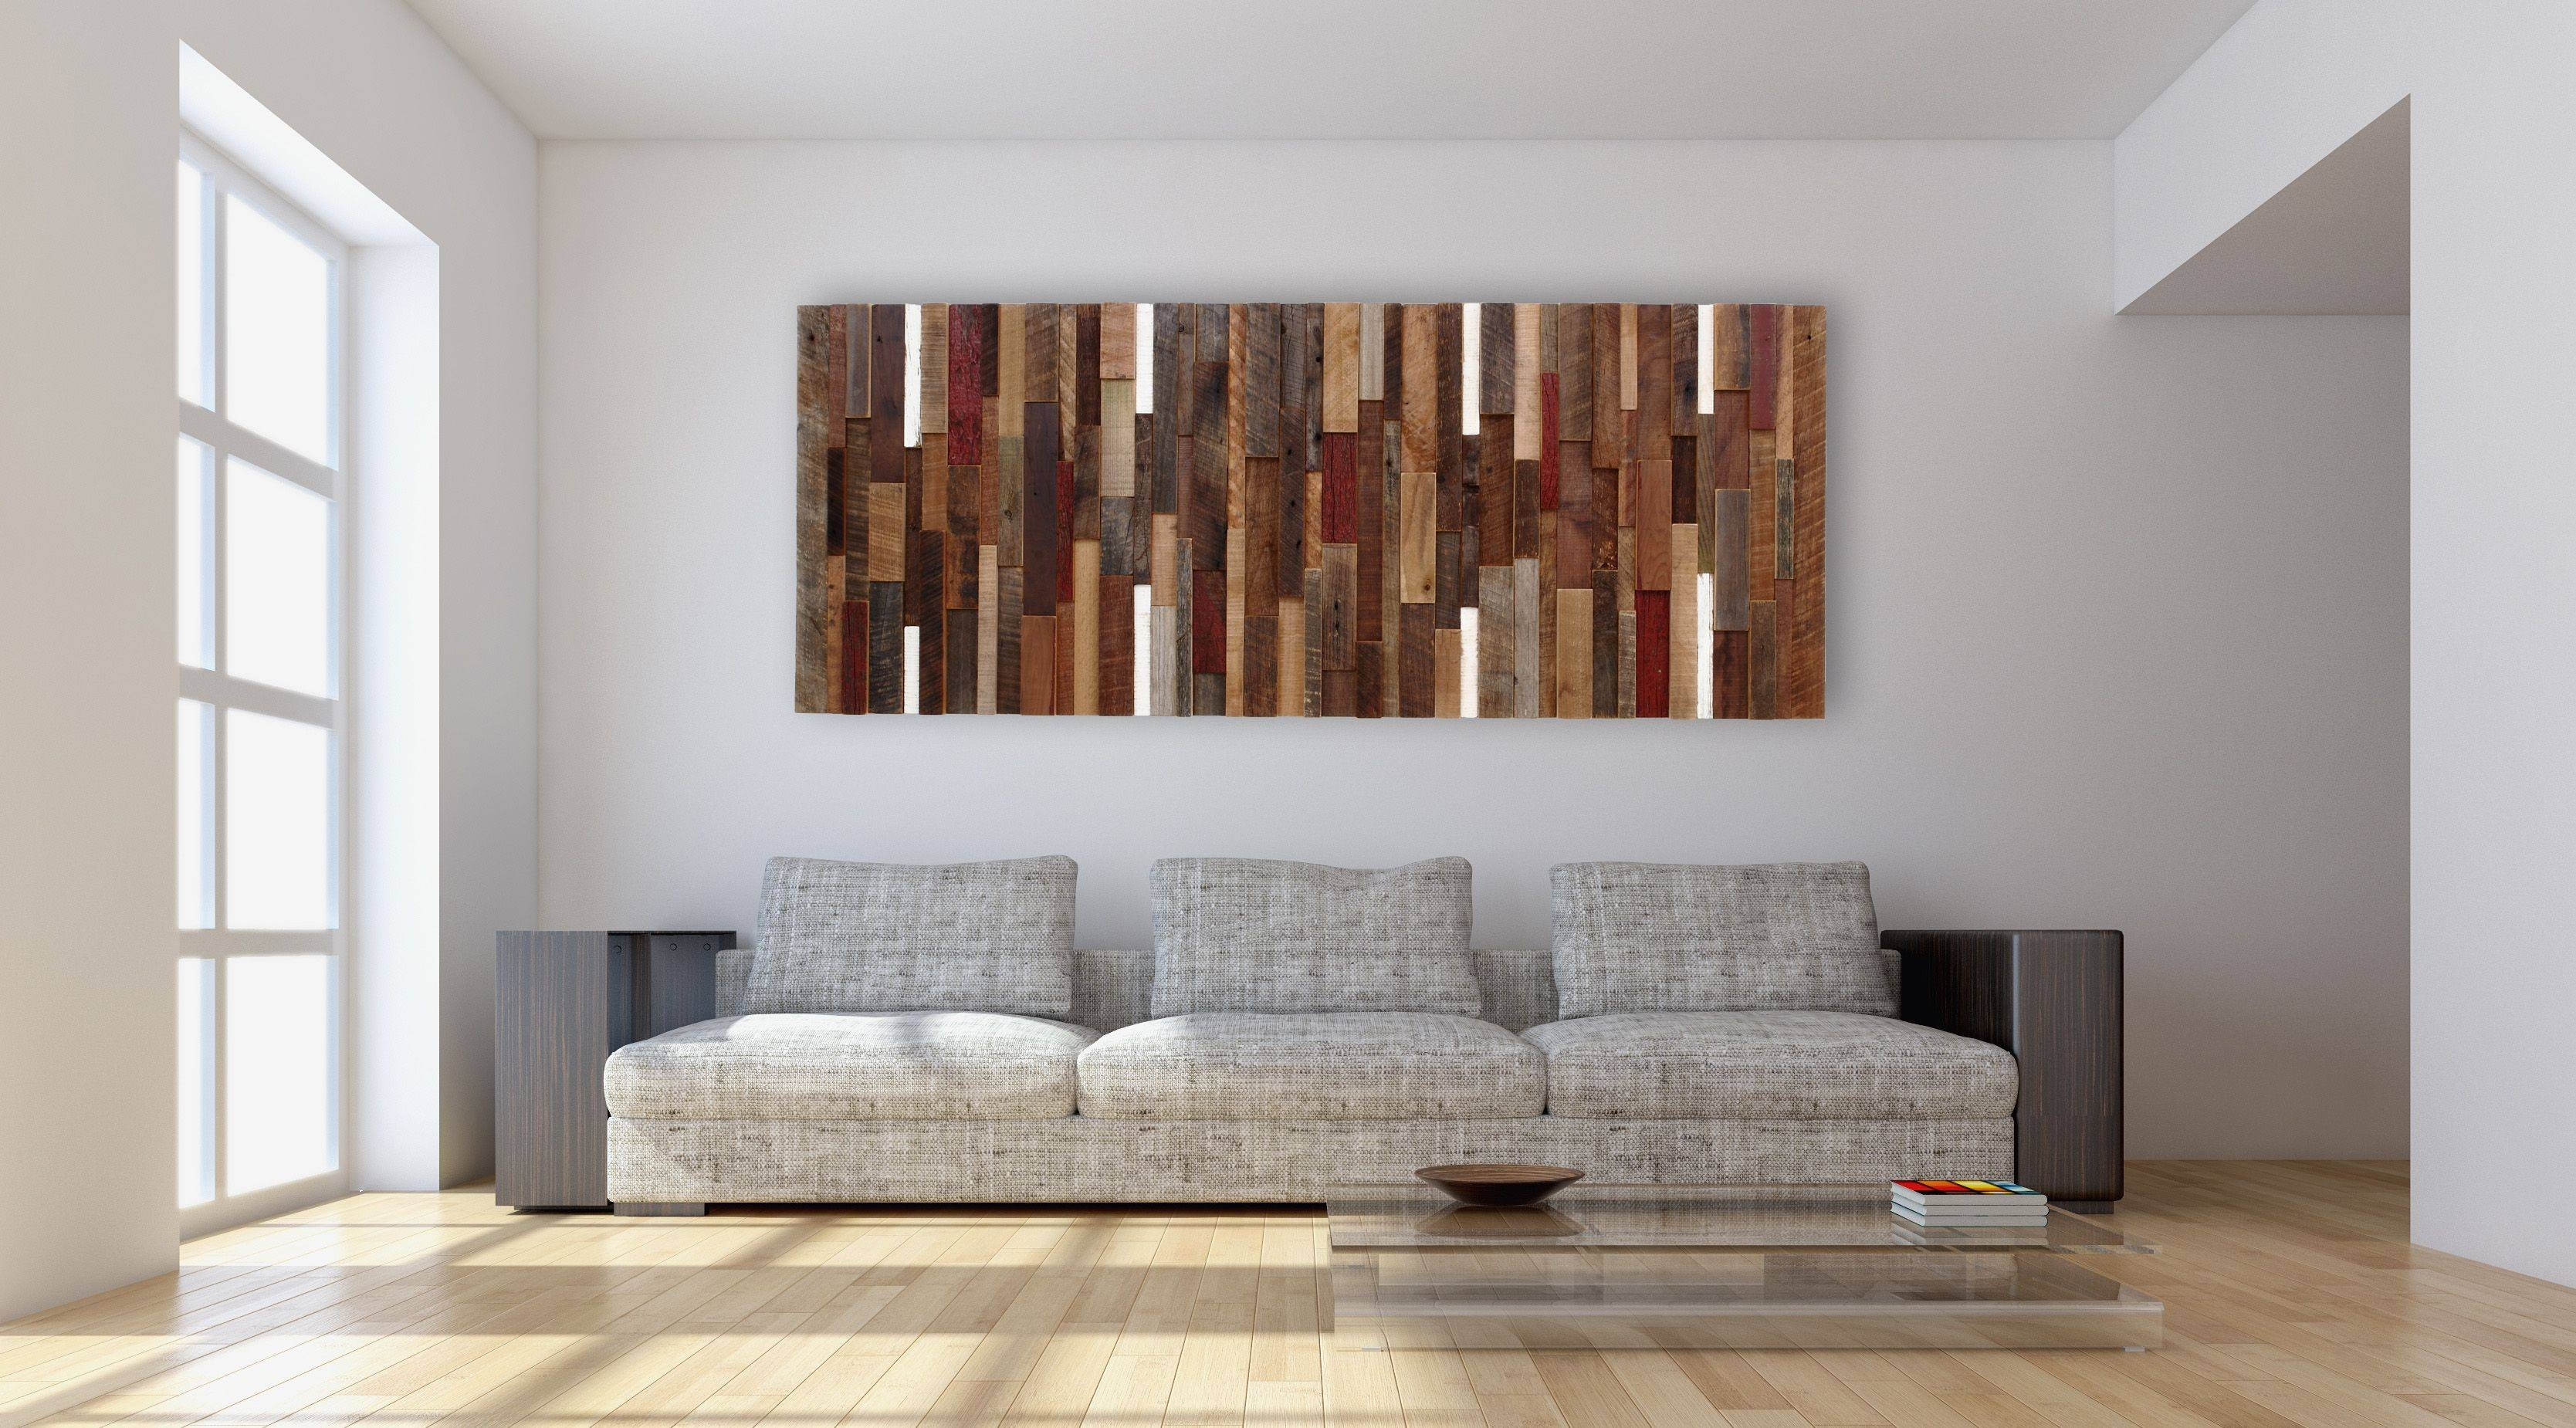 Hand Made Reclaimed Wood Wall Art, Made Intirely Of Reclaimed Barn Intended For Most Current Wood Wall Art (View 8 of 25)